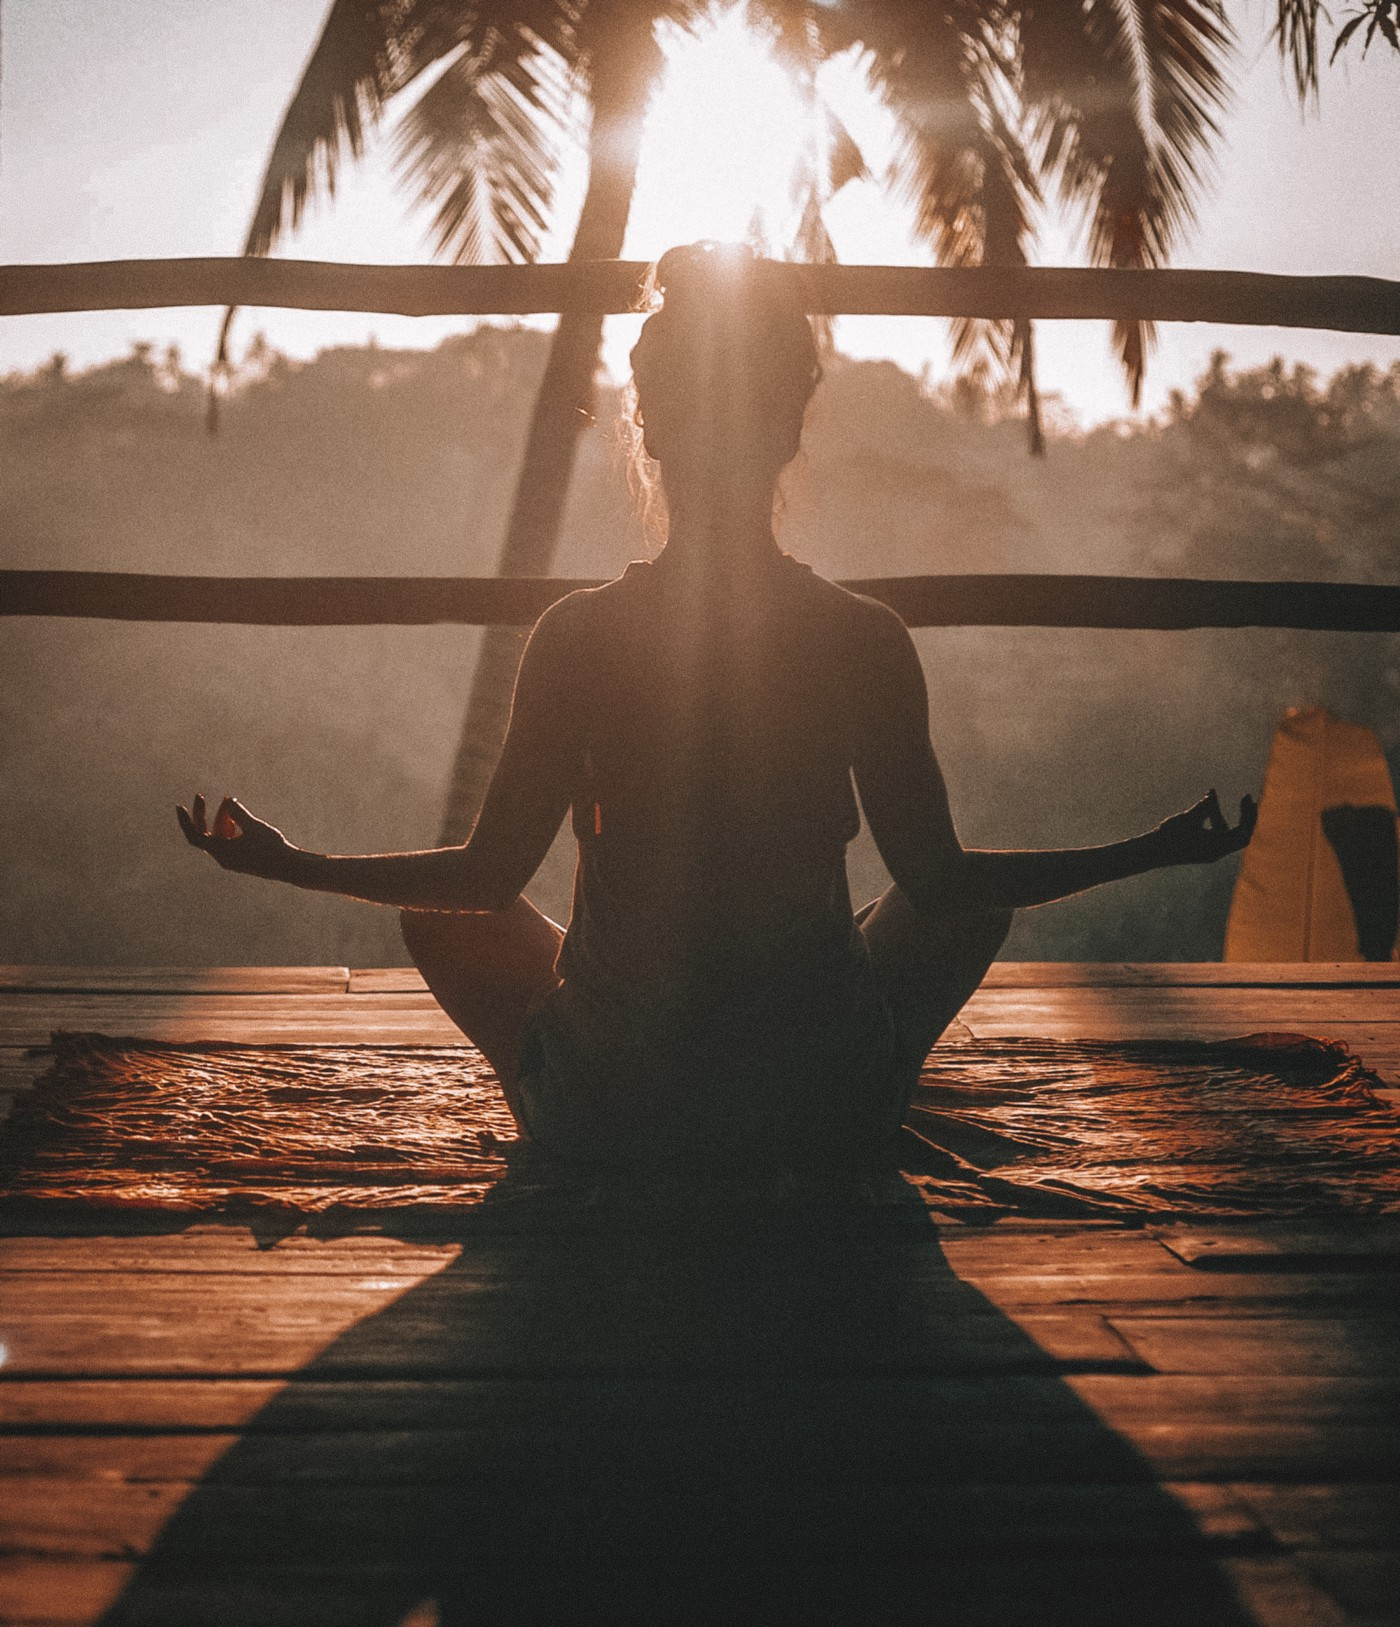 A woman meditating outside in the sunlight